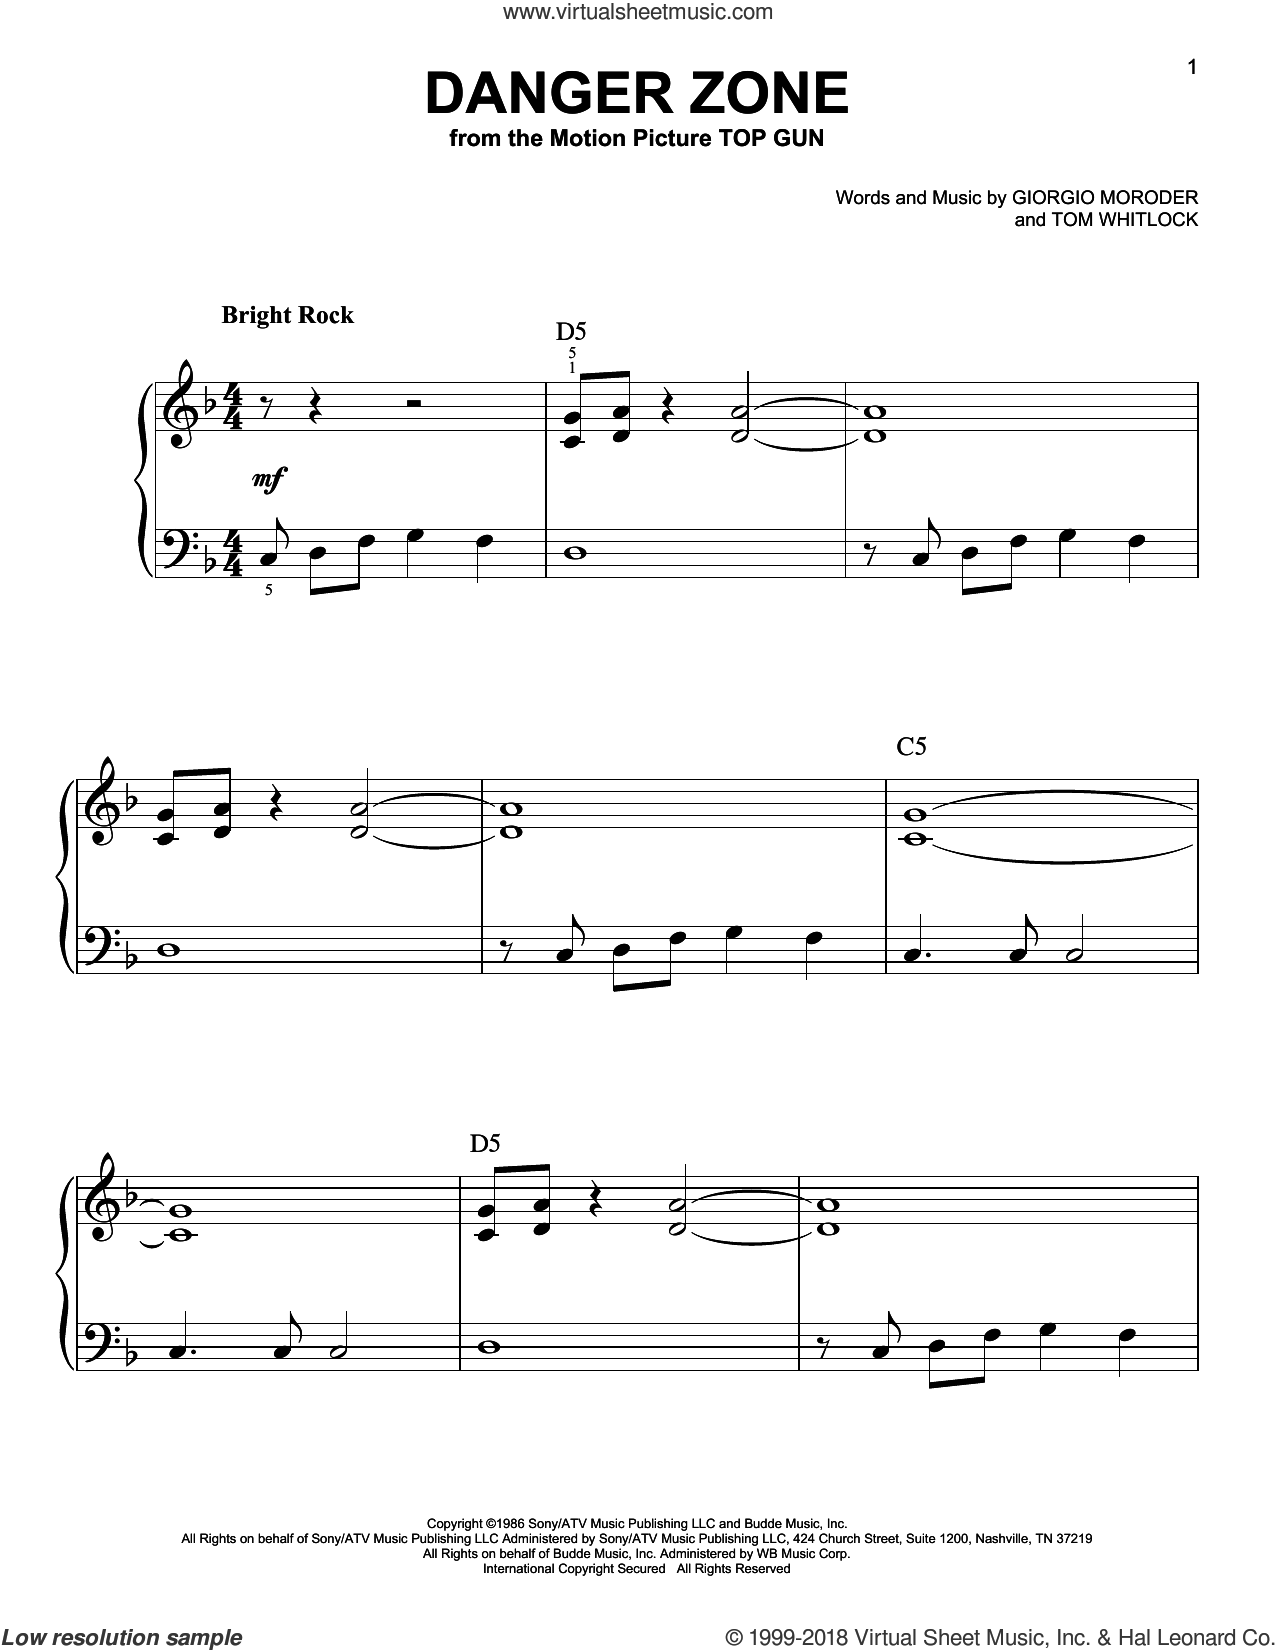 Danger Zone sheet music for piano solo by Tom Whitlock, Kenny Loggins and Giorgio Moroder. Score Image Preview.